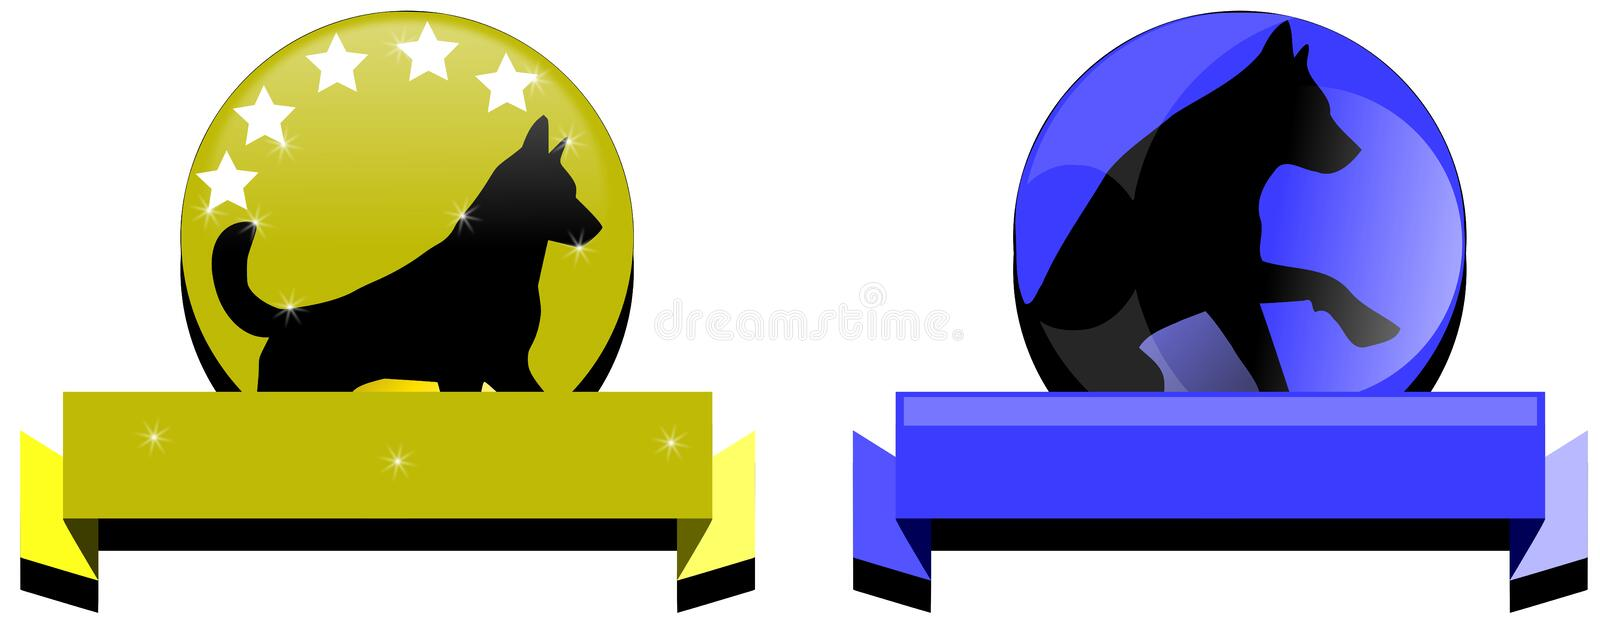 Dog logos. Illustration representing two ideas for dog logos stock illustration